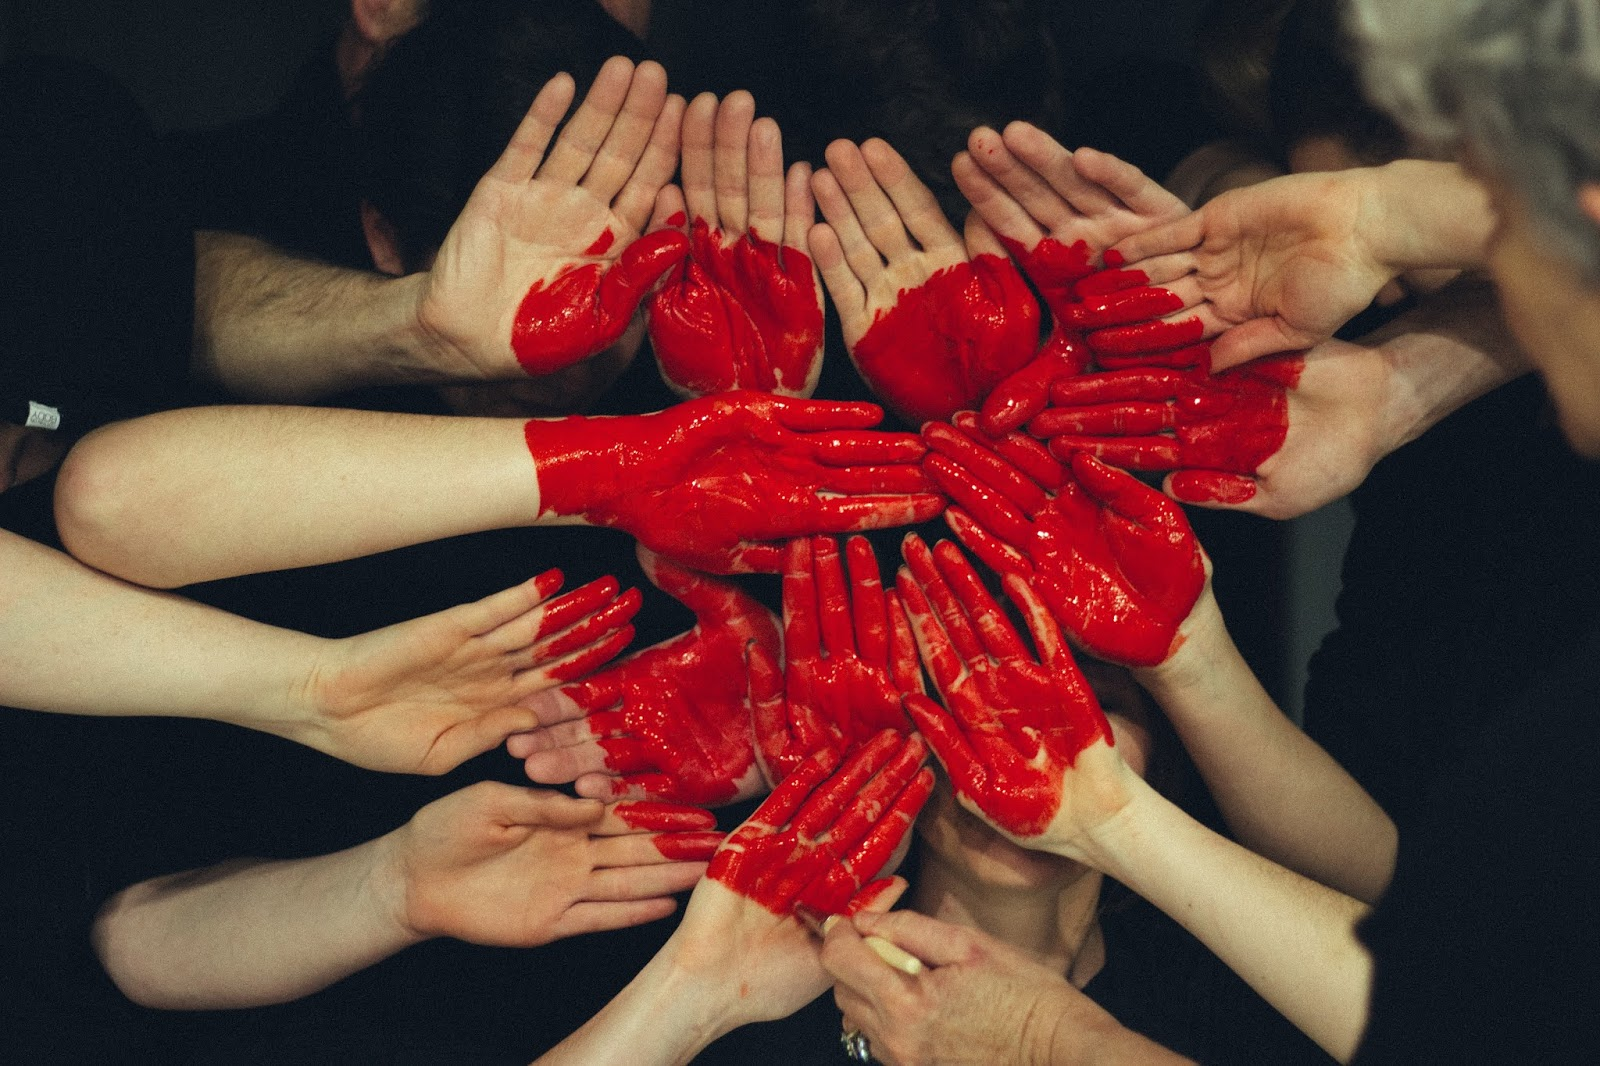 Many hands coming together to make a heart, symbolic of the gift of whole body donation